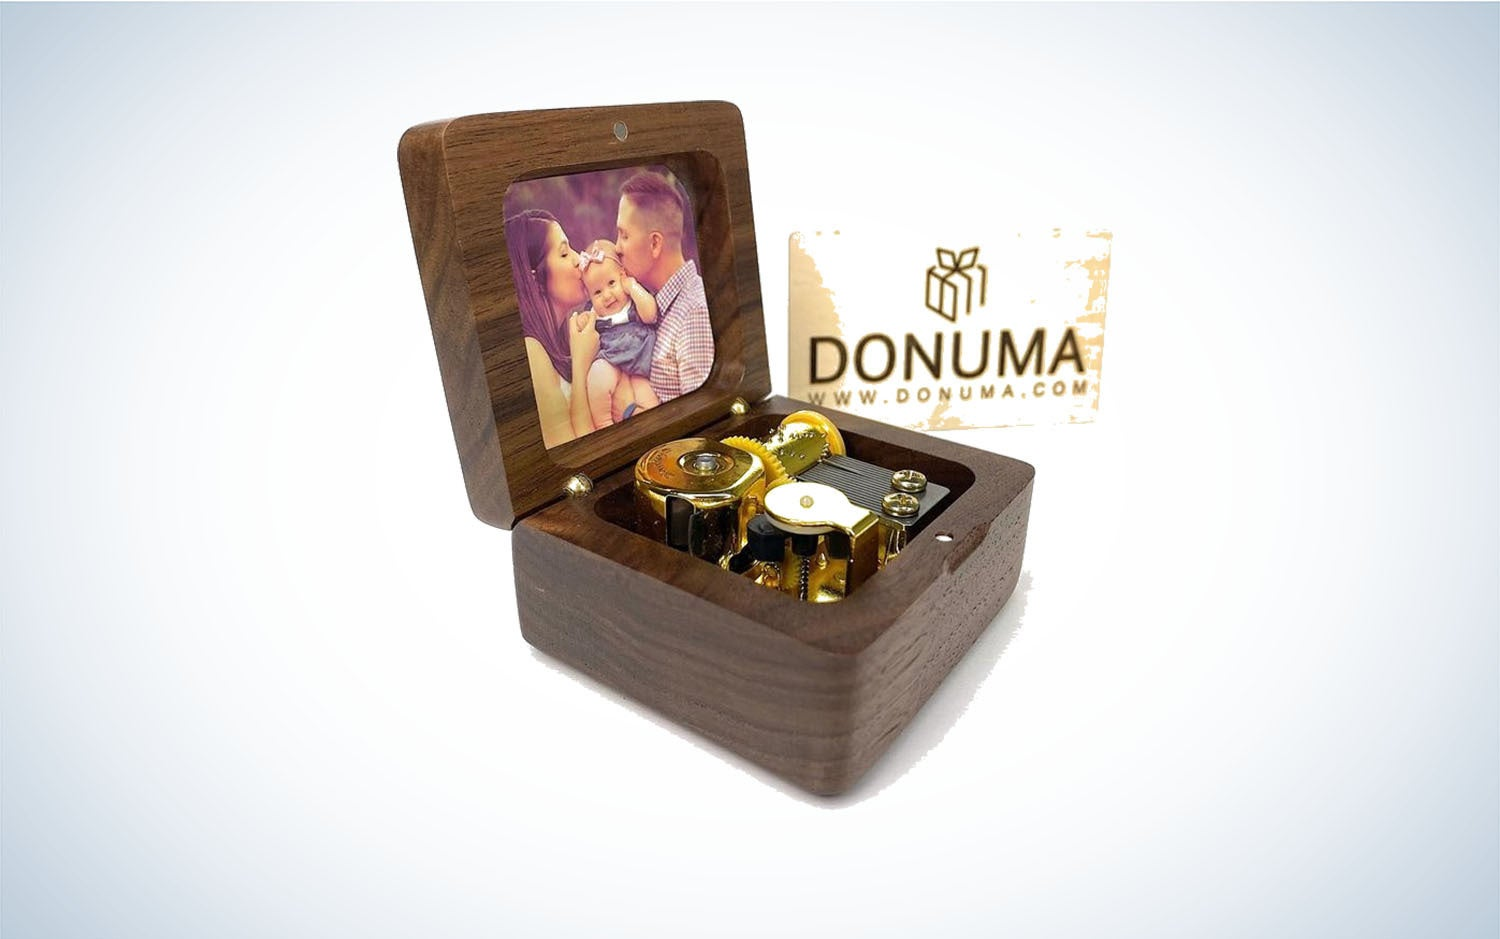 Product image of wooden photo music box